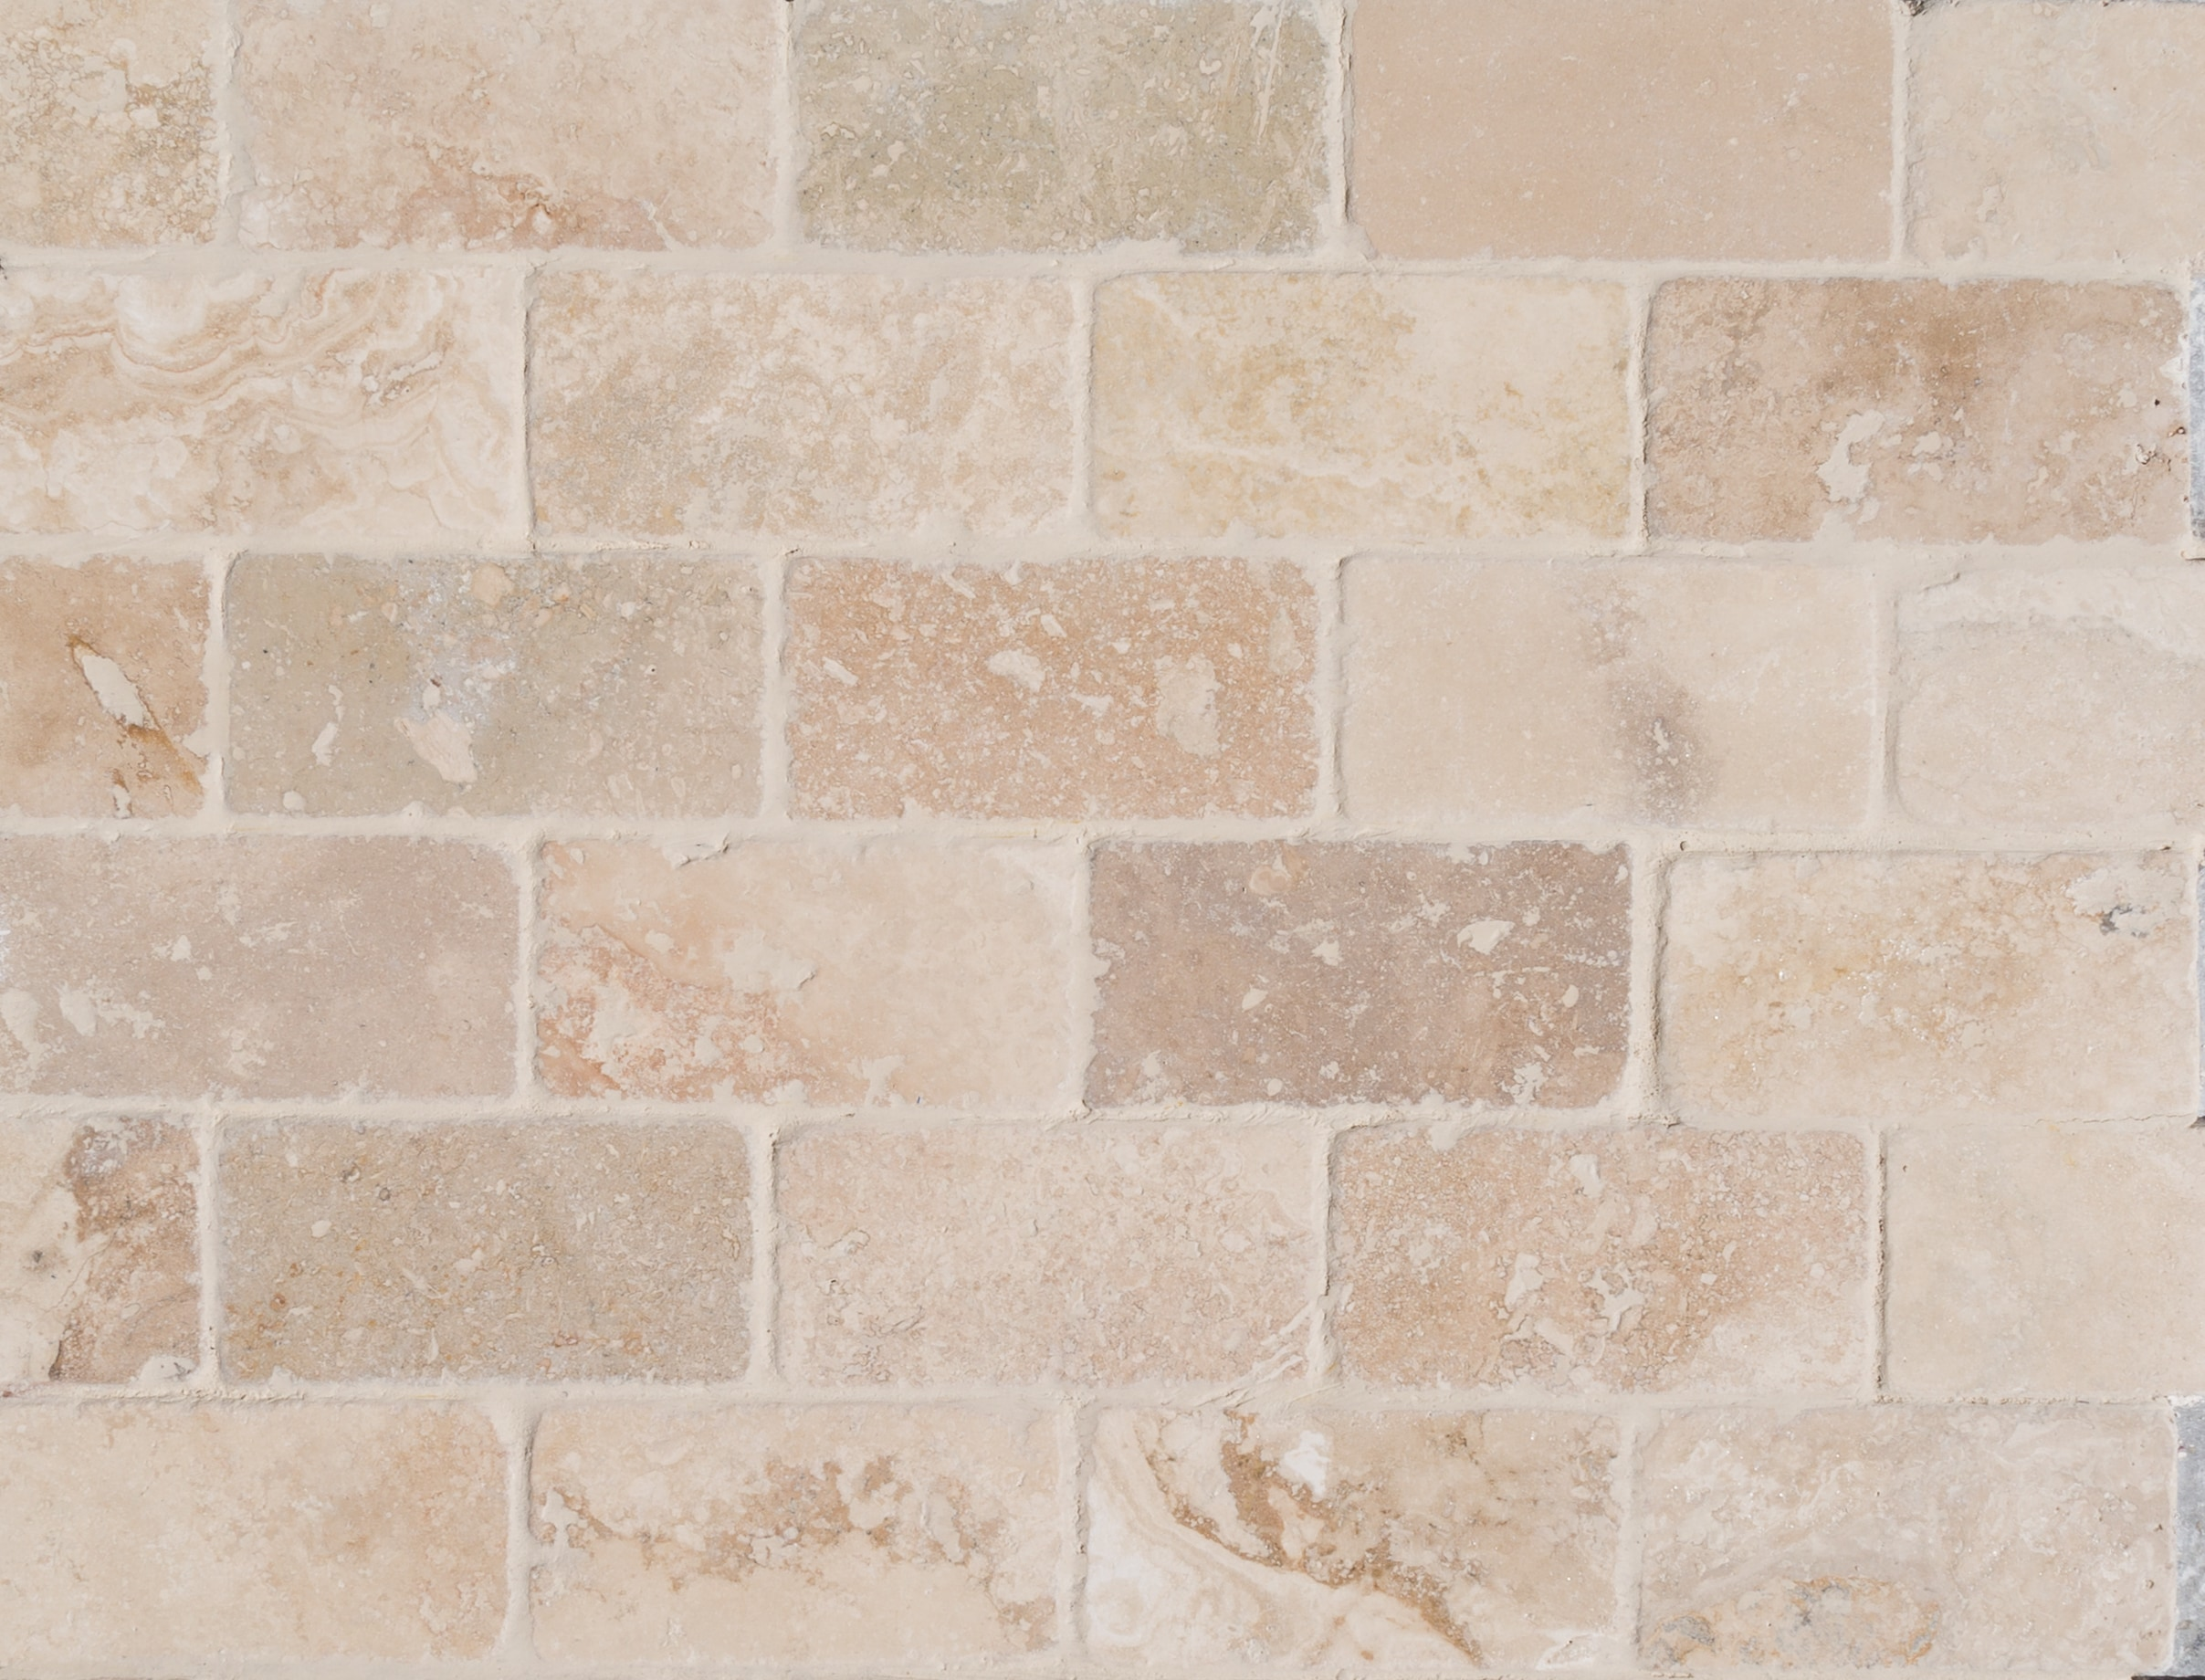 FREE Samples: Izmir Travertine Tile - Tumbled Riverbed Walnut Beige ...